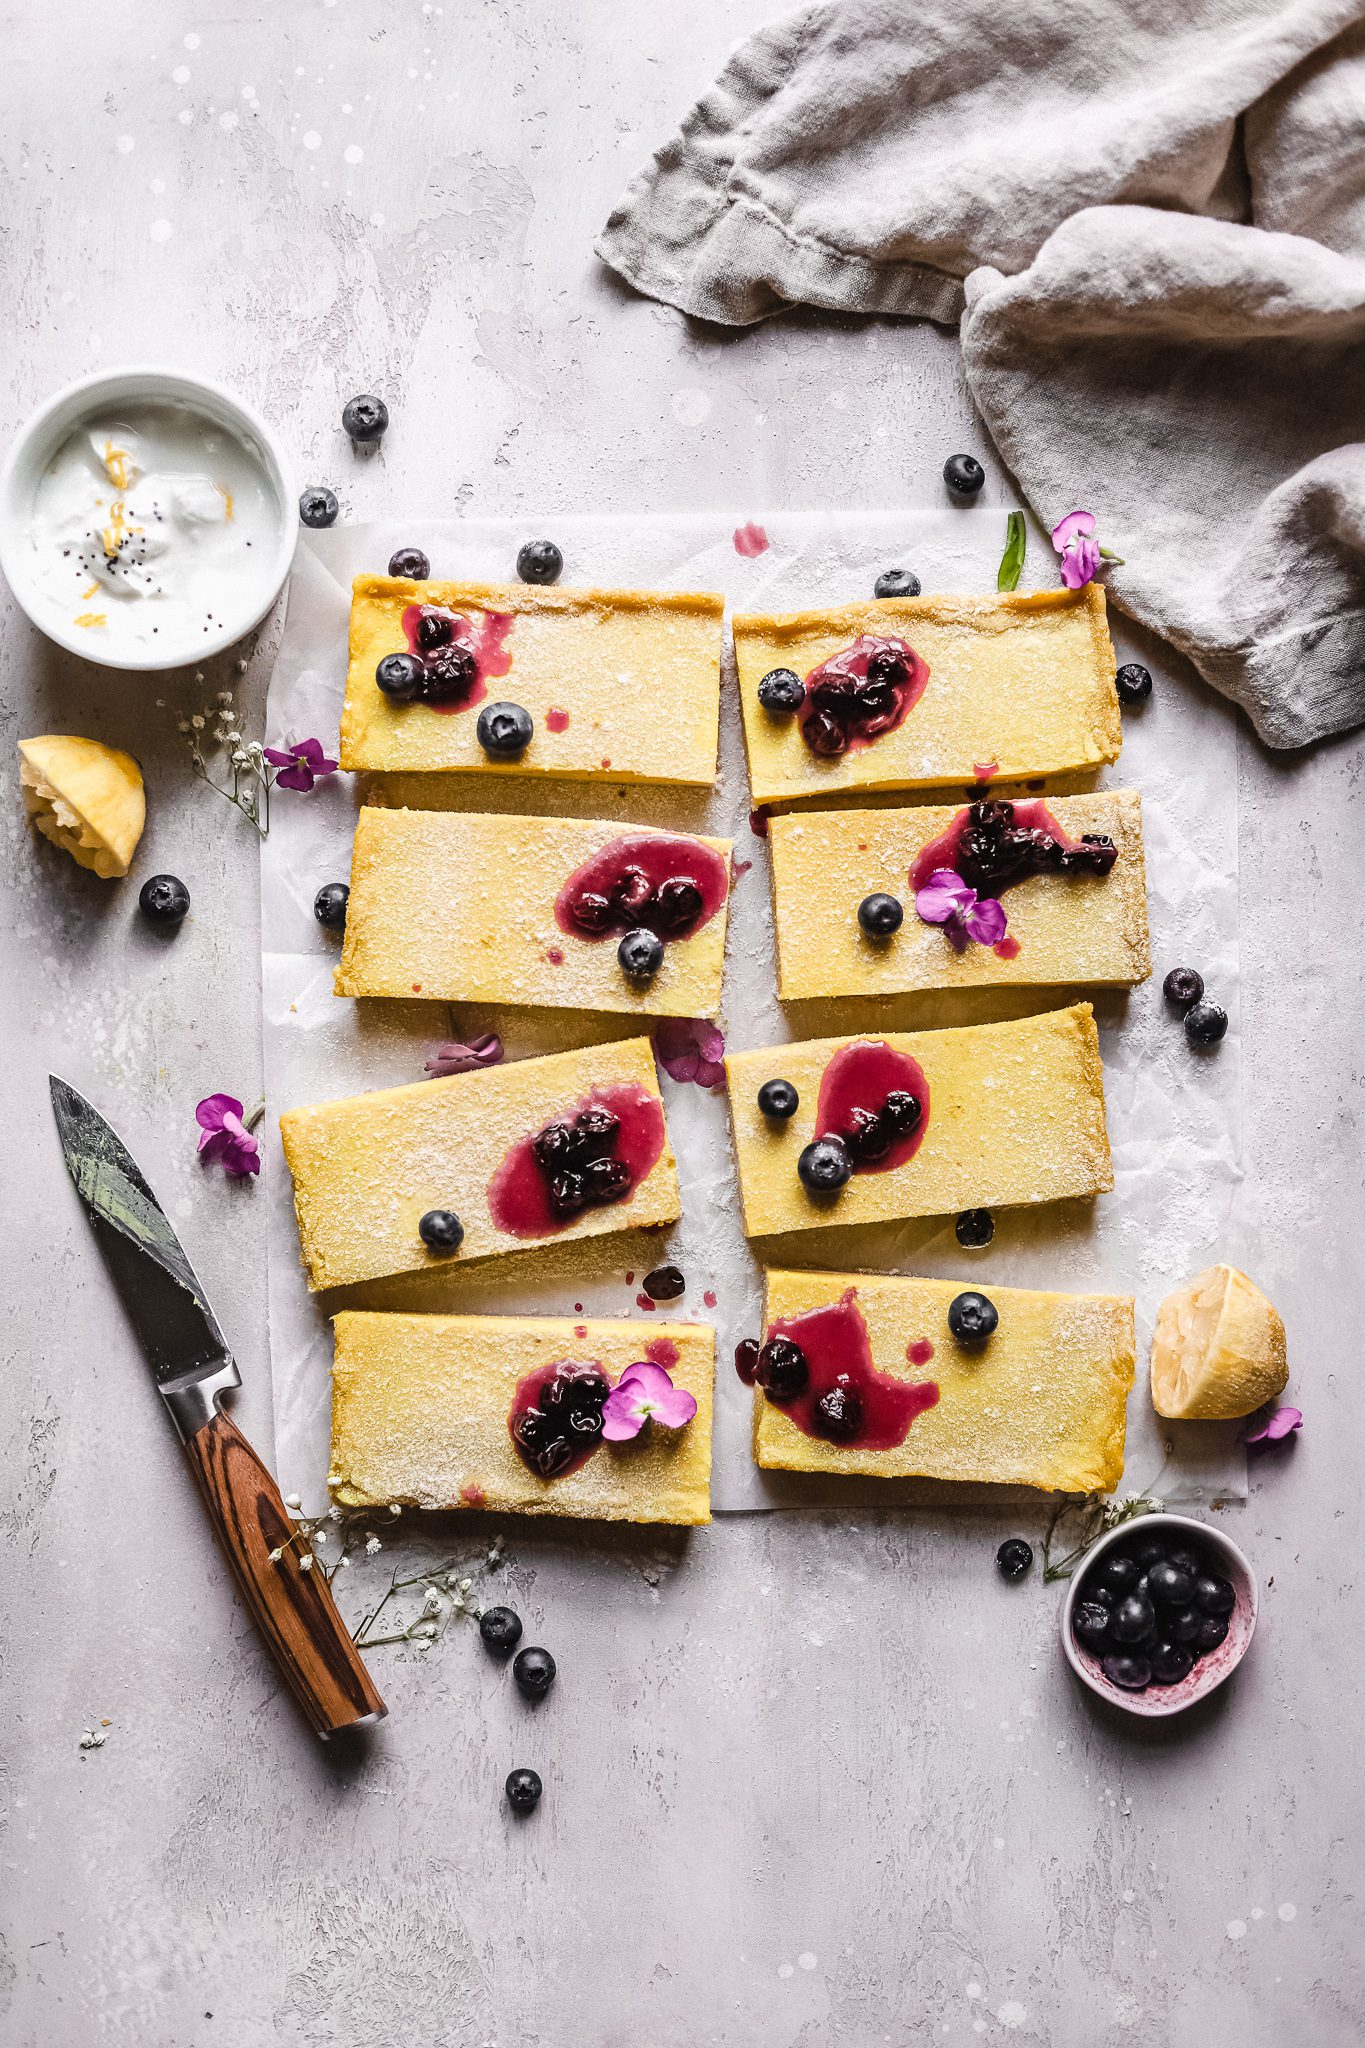 sliced Paleo vegan lemon bars with blueberry jam on top with a knife next to it